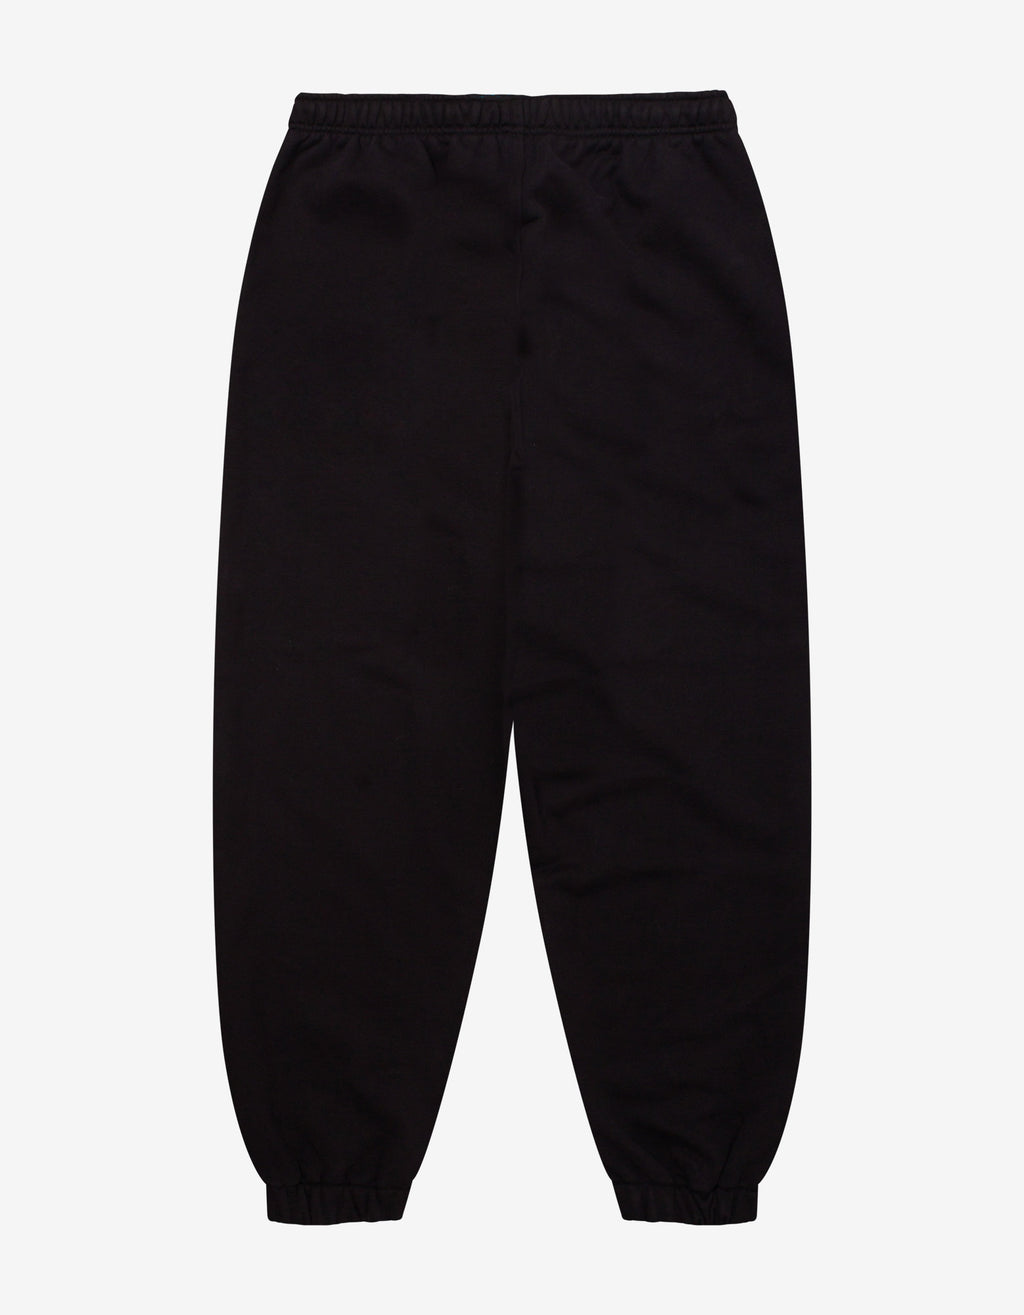 Black Gym Wear Sweat Pants